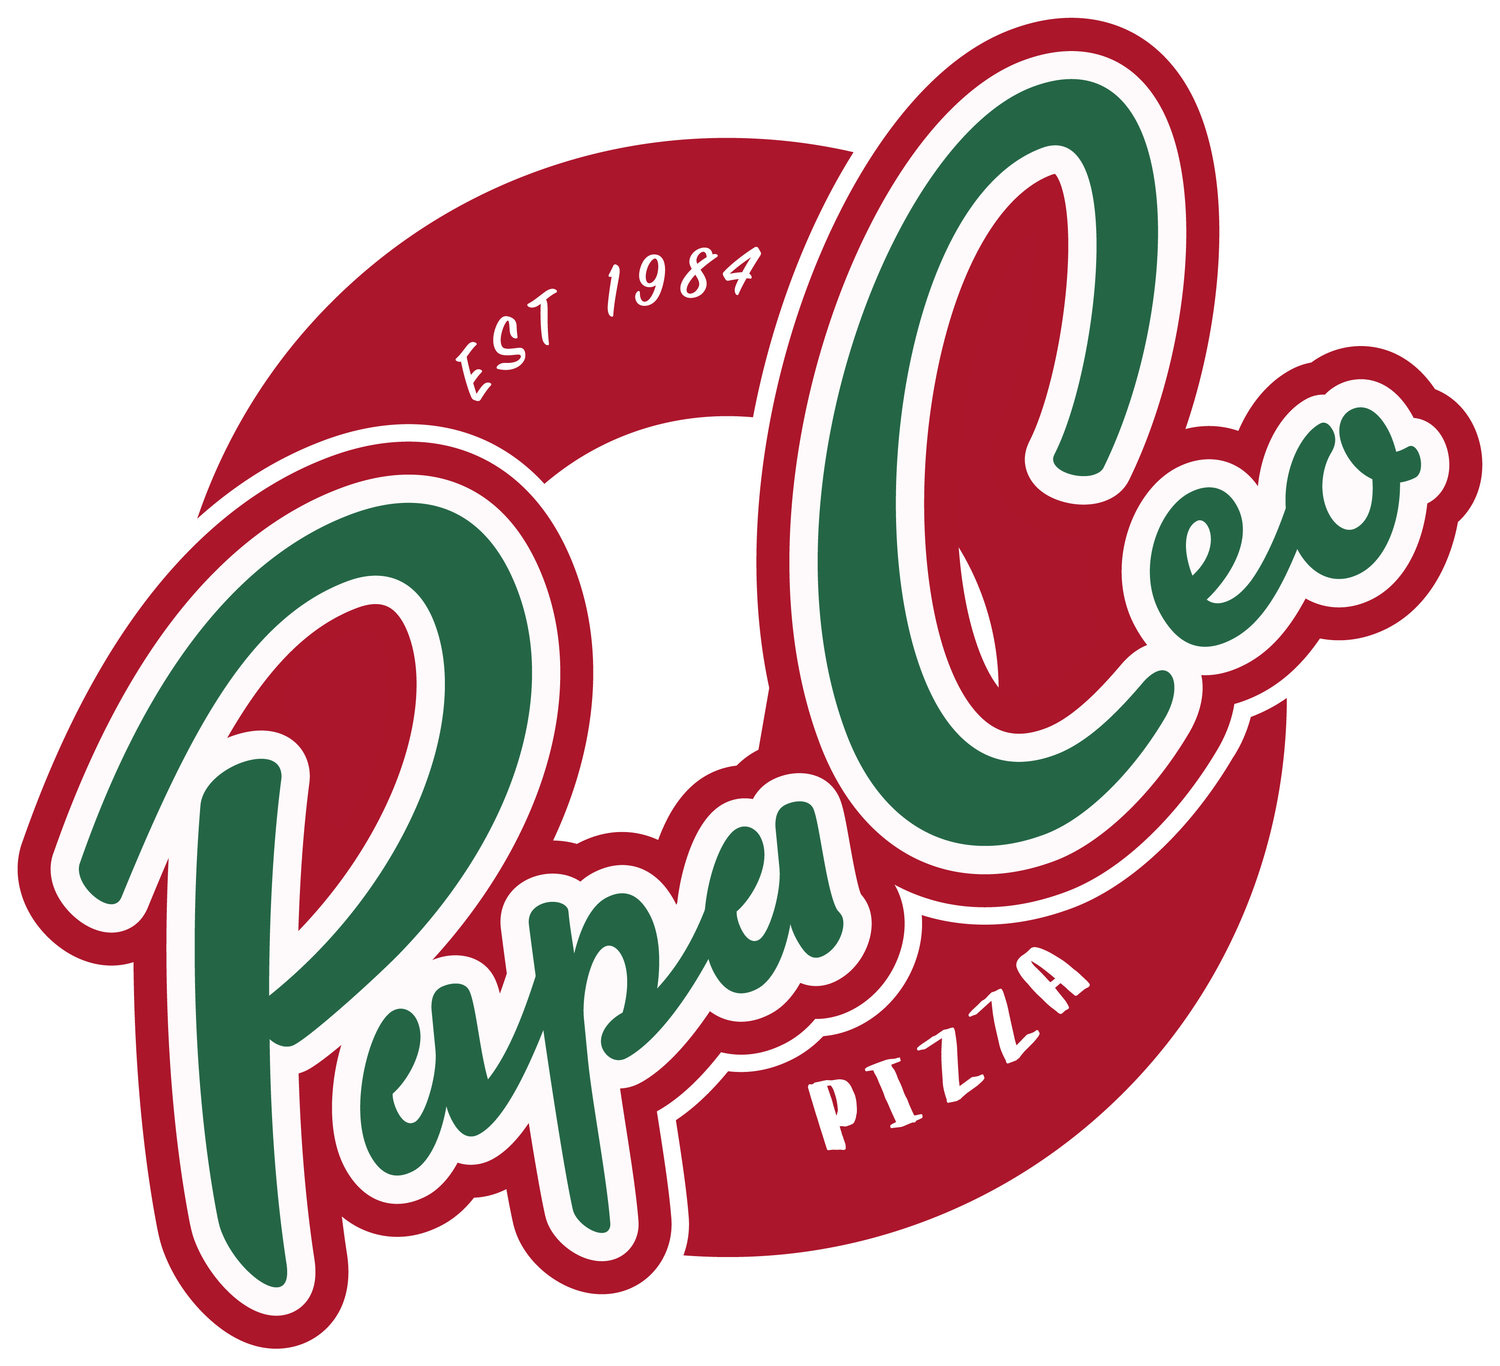 Papa Ceo Pizza